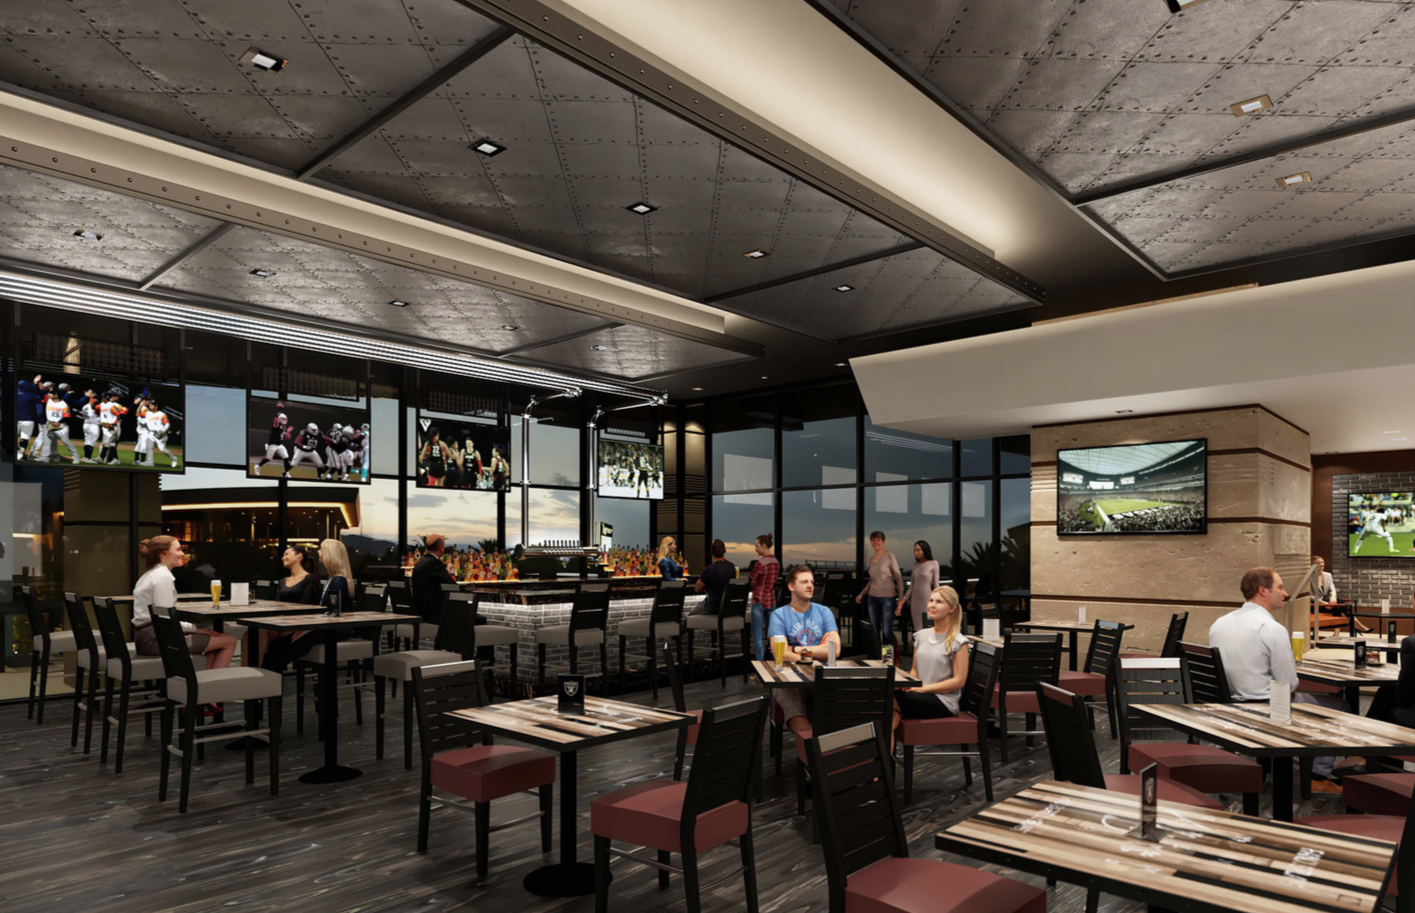 A rendering of a sports bar